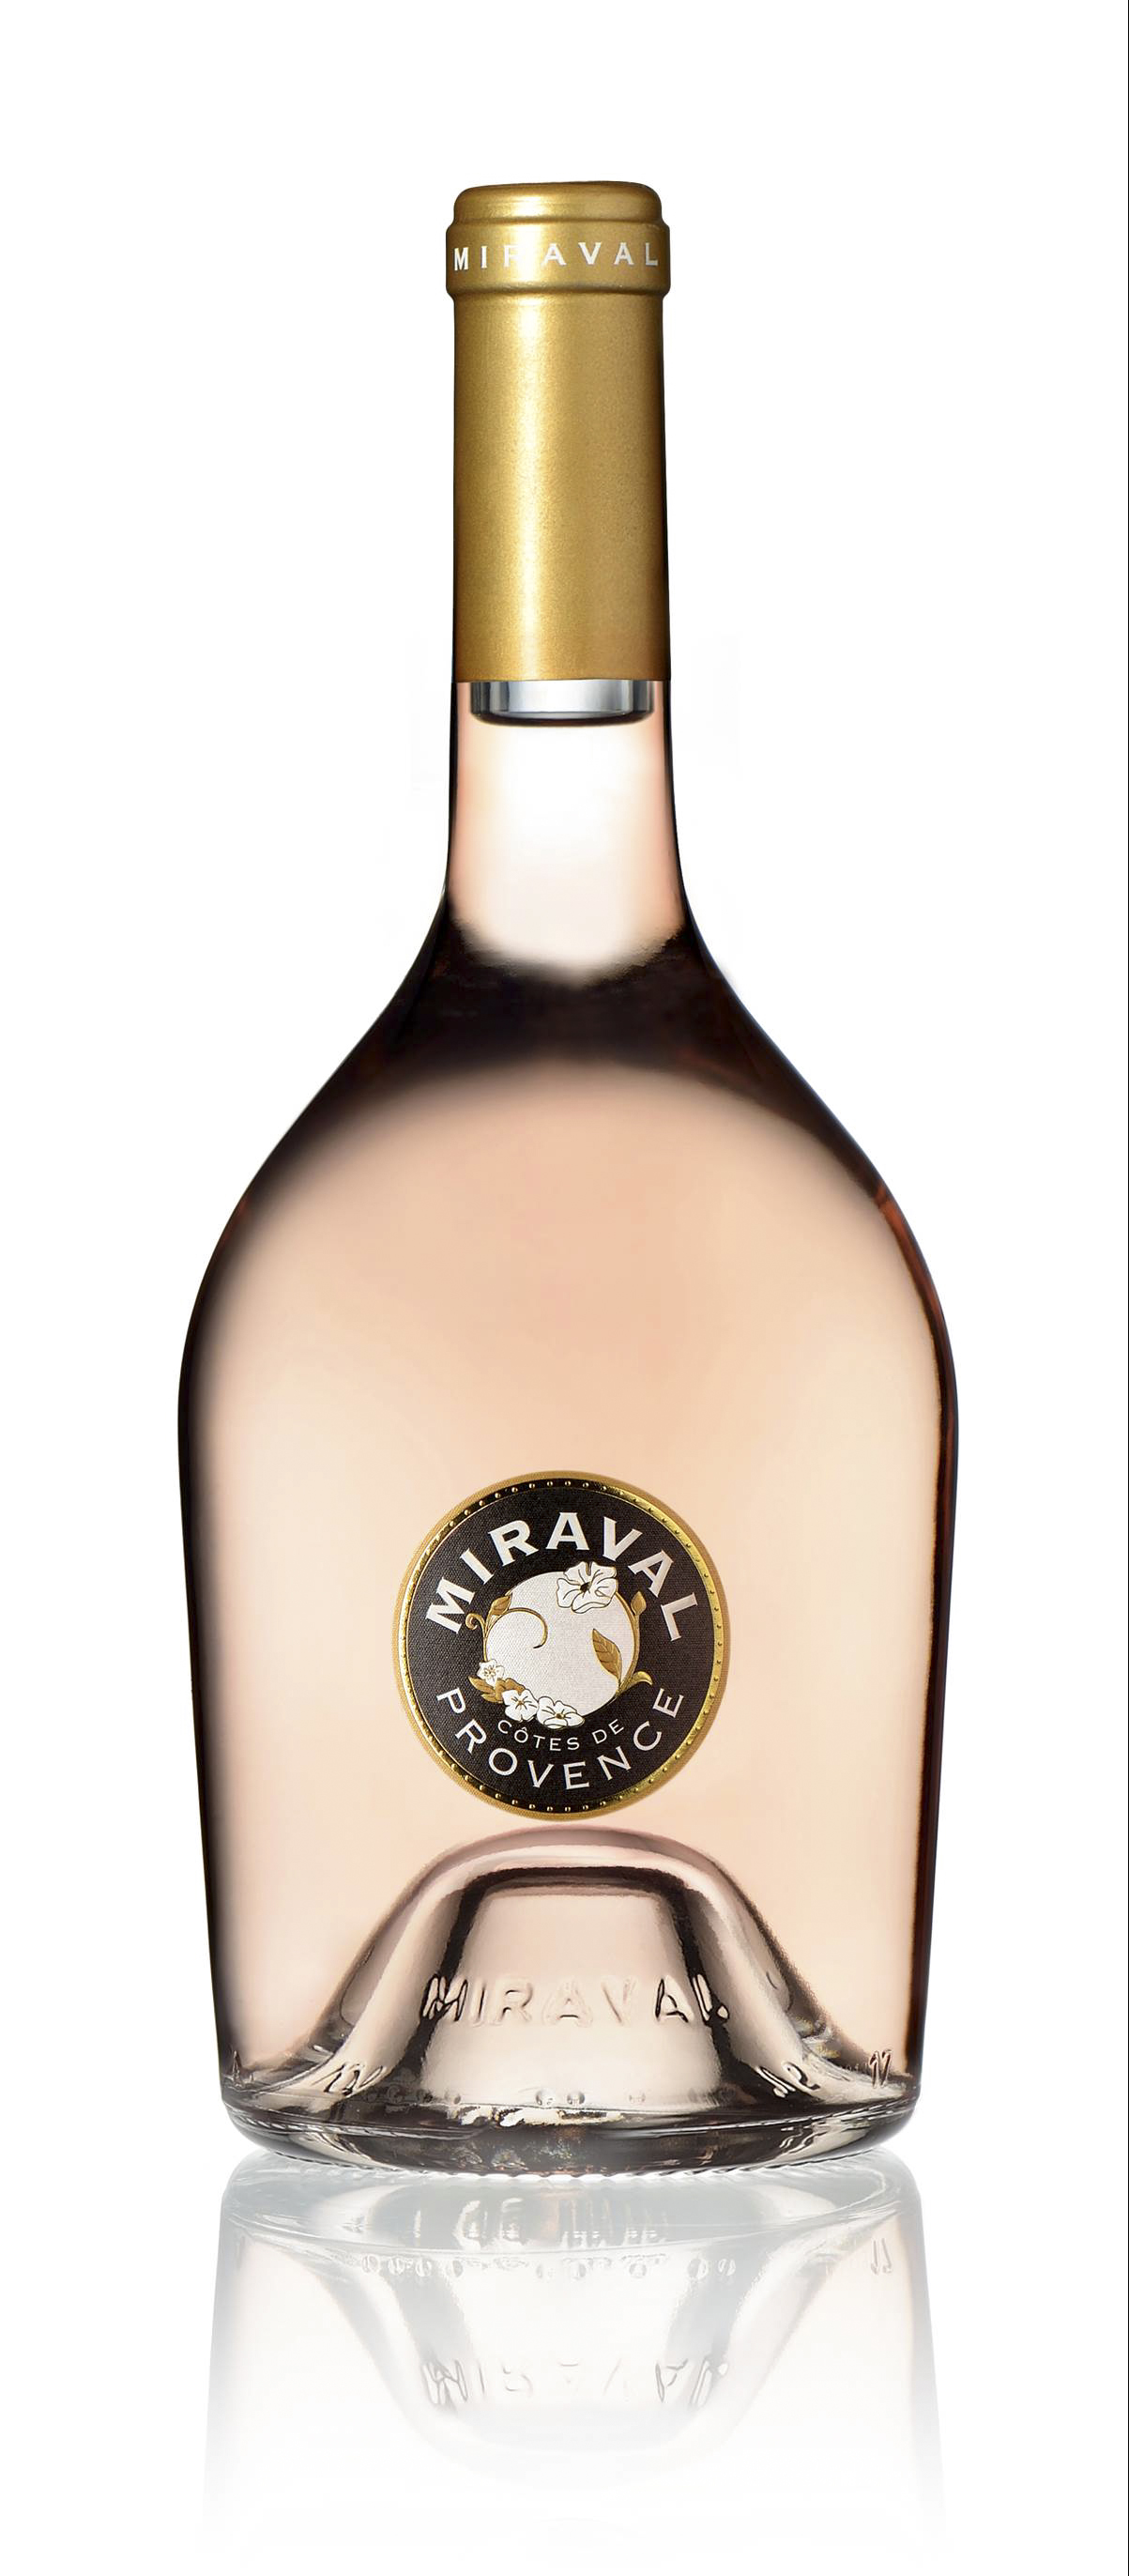 Perrin Miraval Côtes de Provence Rosé Bottle_with reflection.jpg